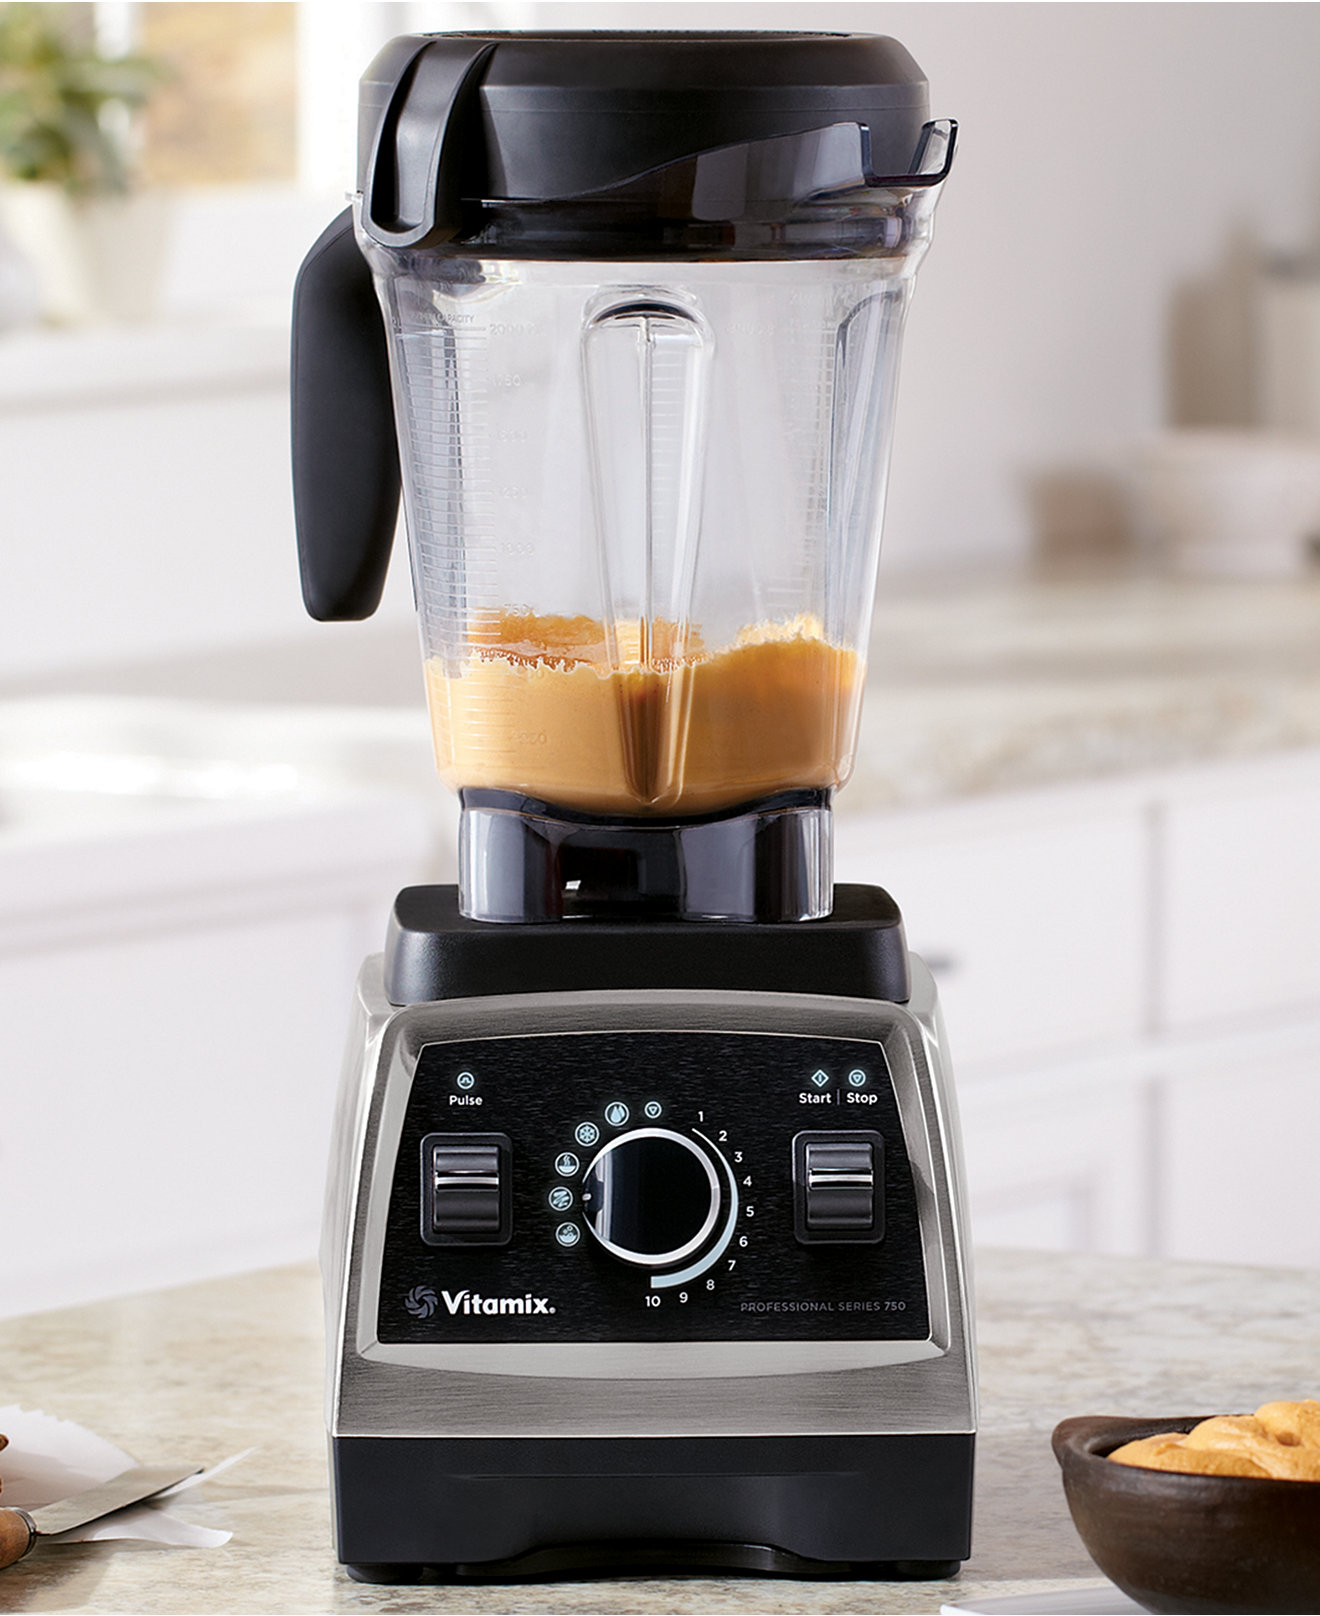 Vitamix Professional Series 750 Blender - Electrics - Kitchen - Macy's Bridal and Wedding Registry